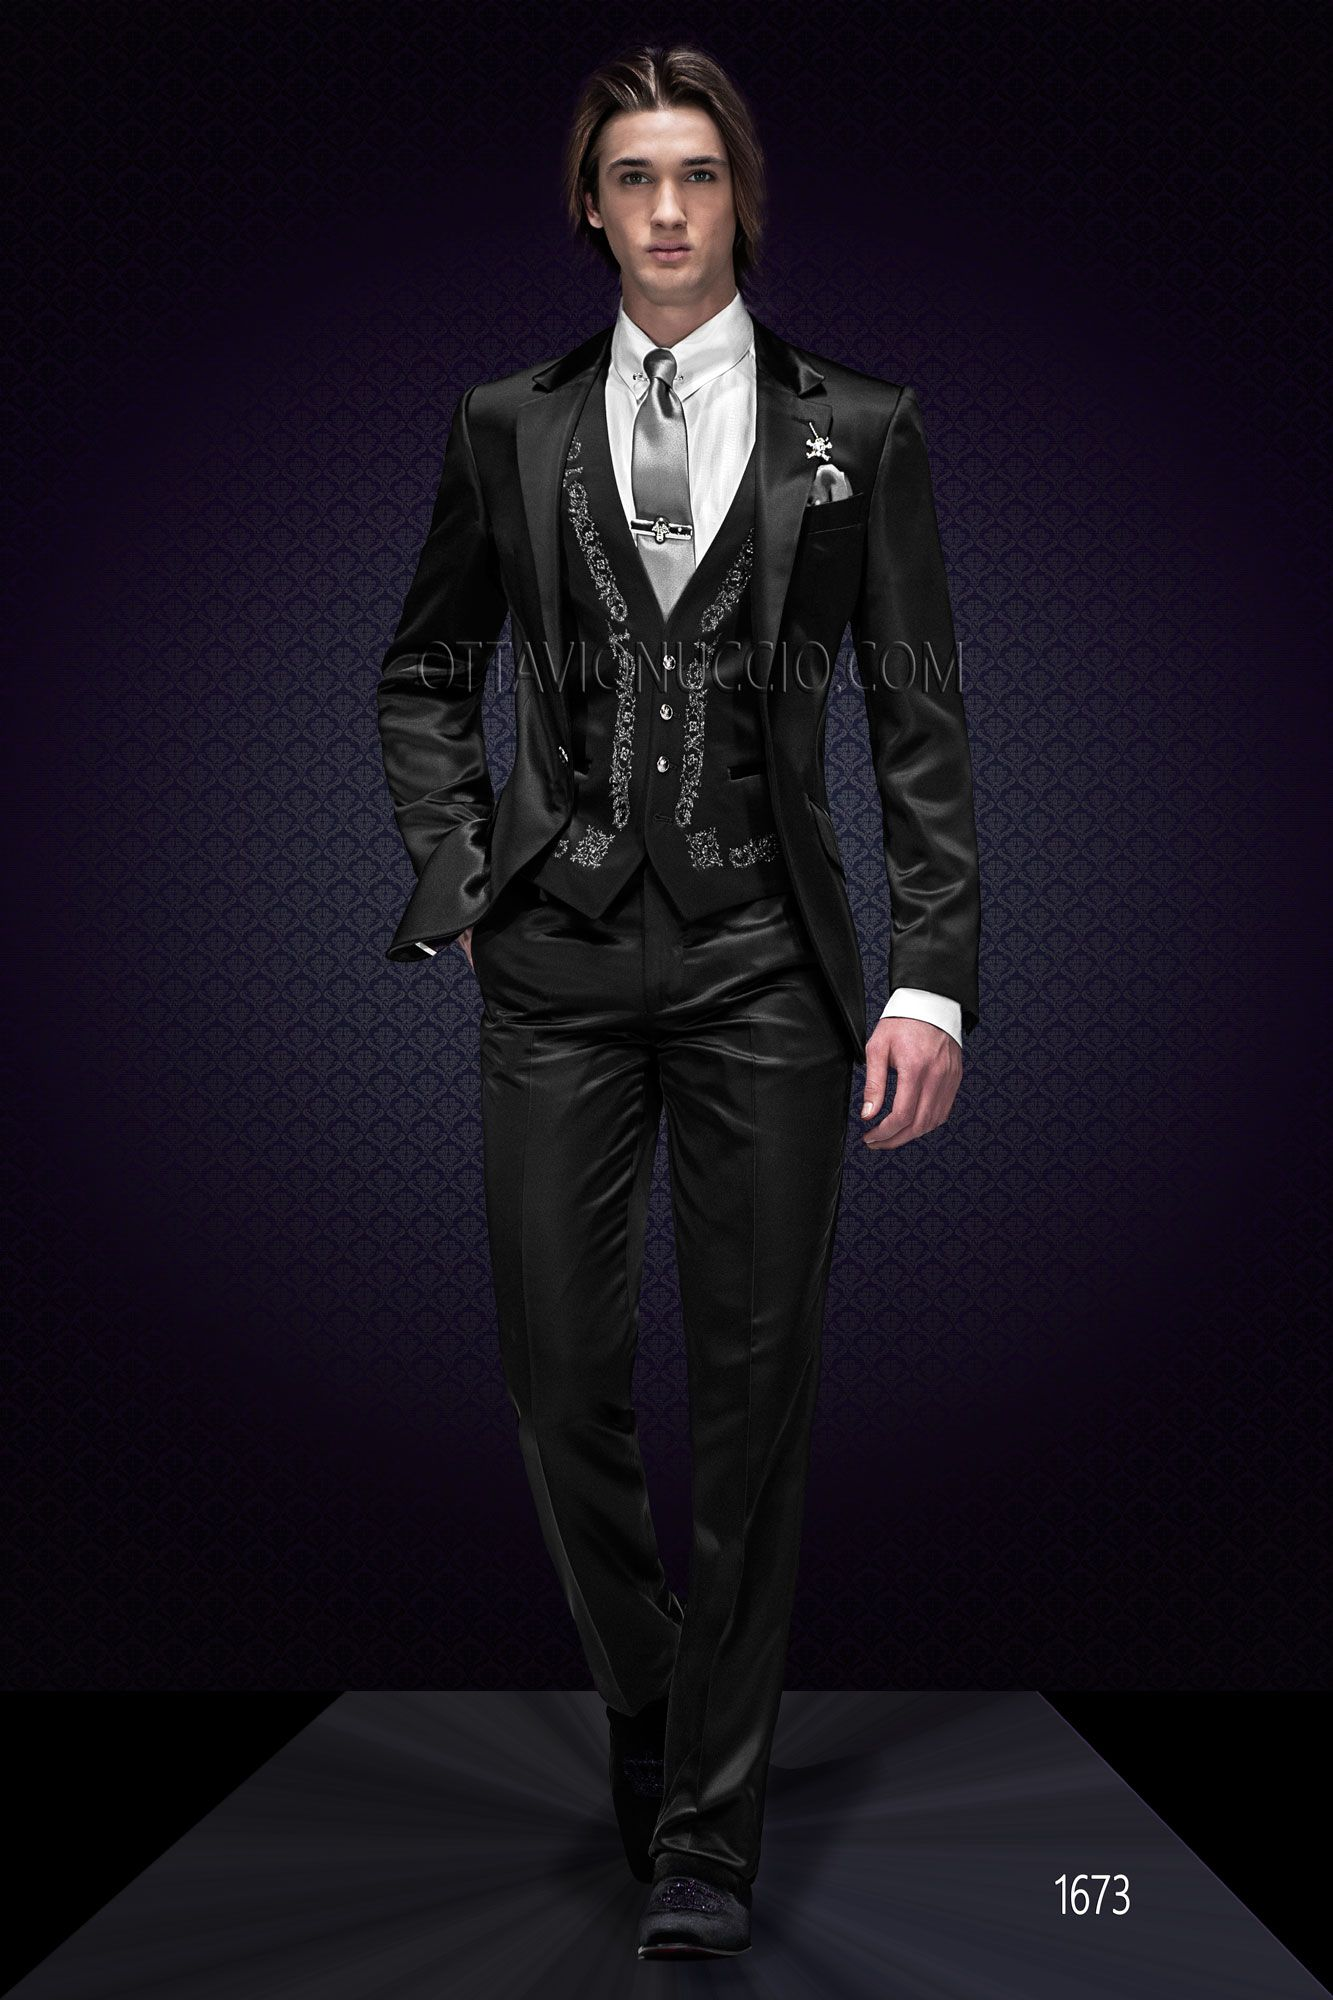 Black Wedding Suit With Silver Tone Embroidery Black Suit Wedding Wedding Suits Men Designer Suits For Men [ 2000 x 1333 Pixel ]